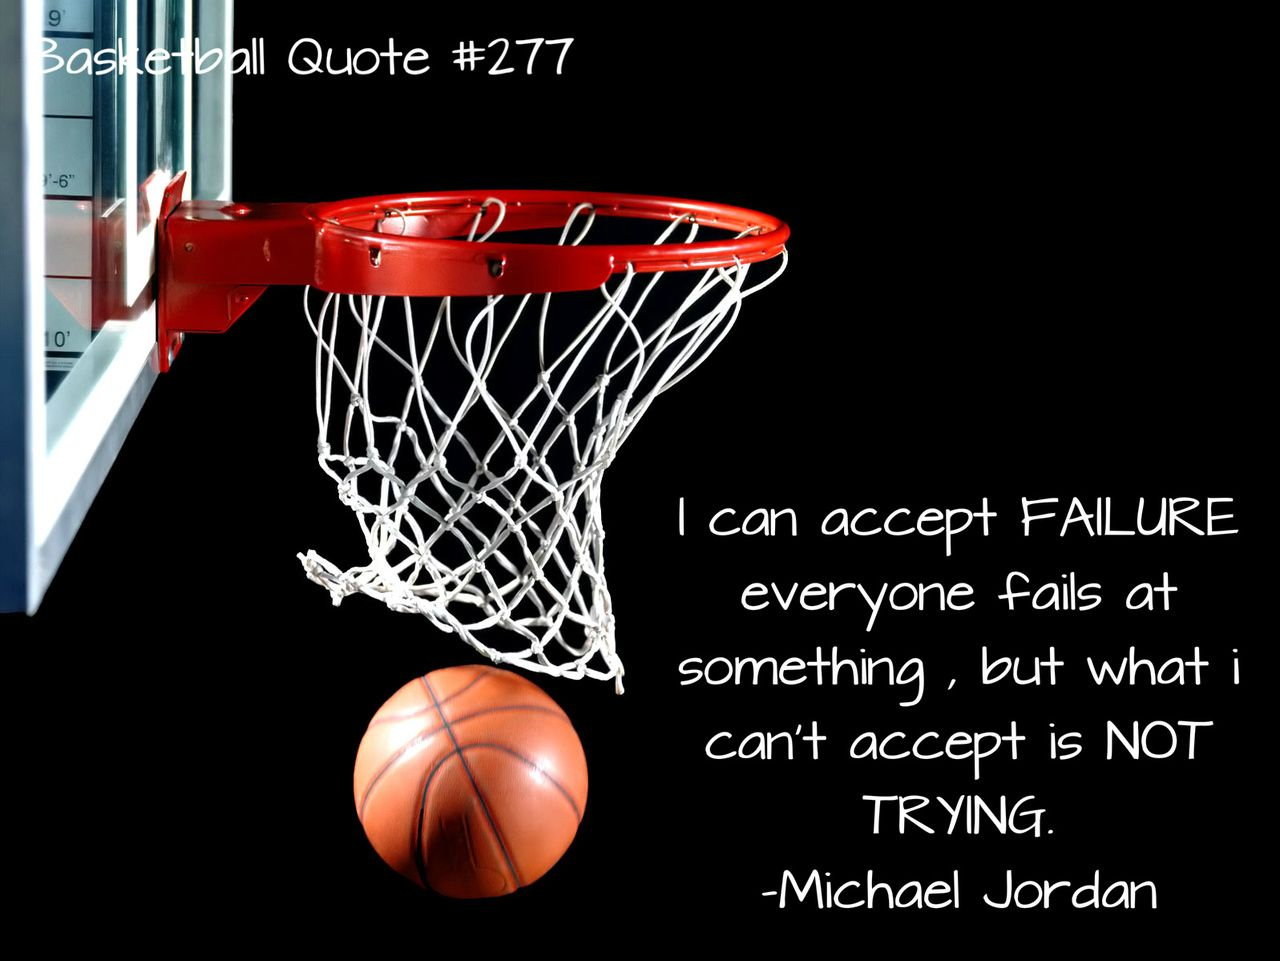 Basketball Inspirational Quotes Basketball Quotes  Google Search  Fitness  Pinterest  Inspiration